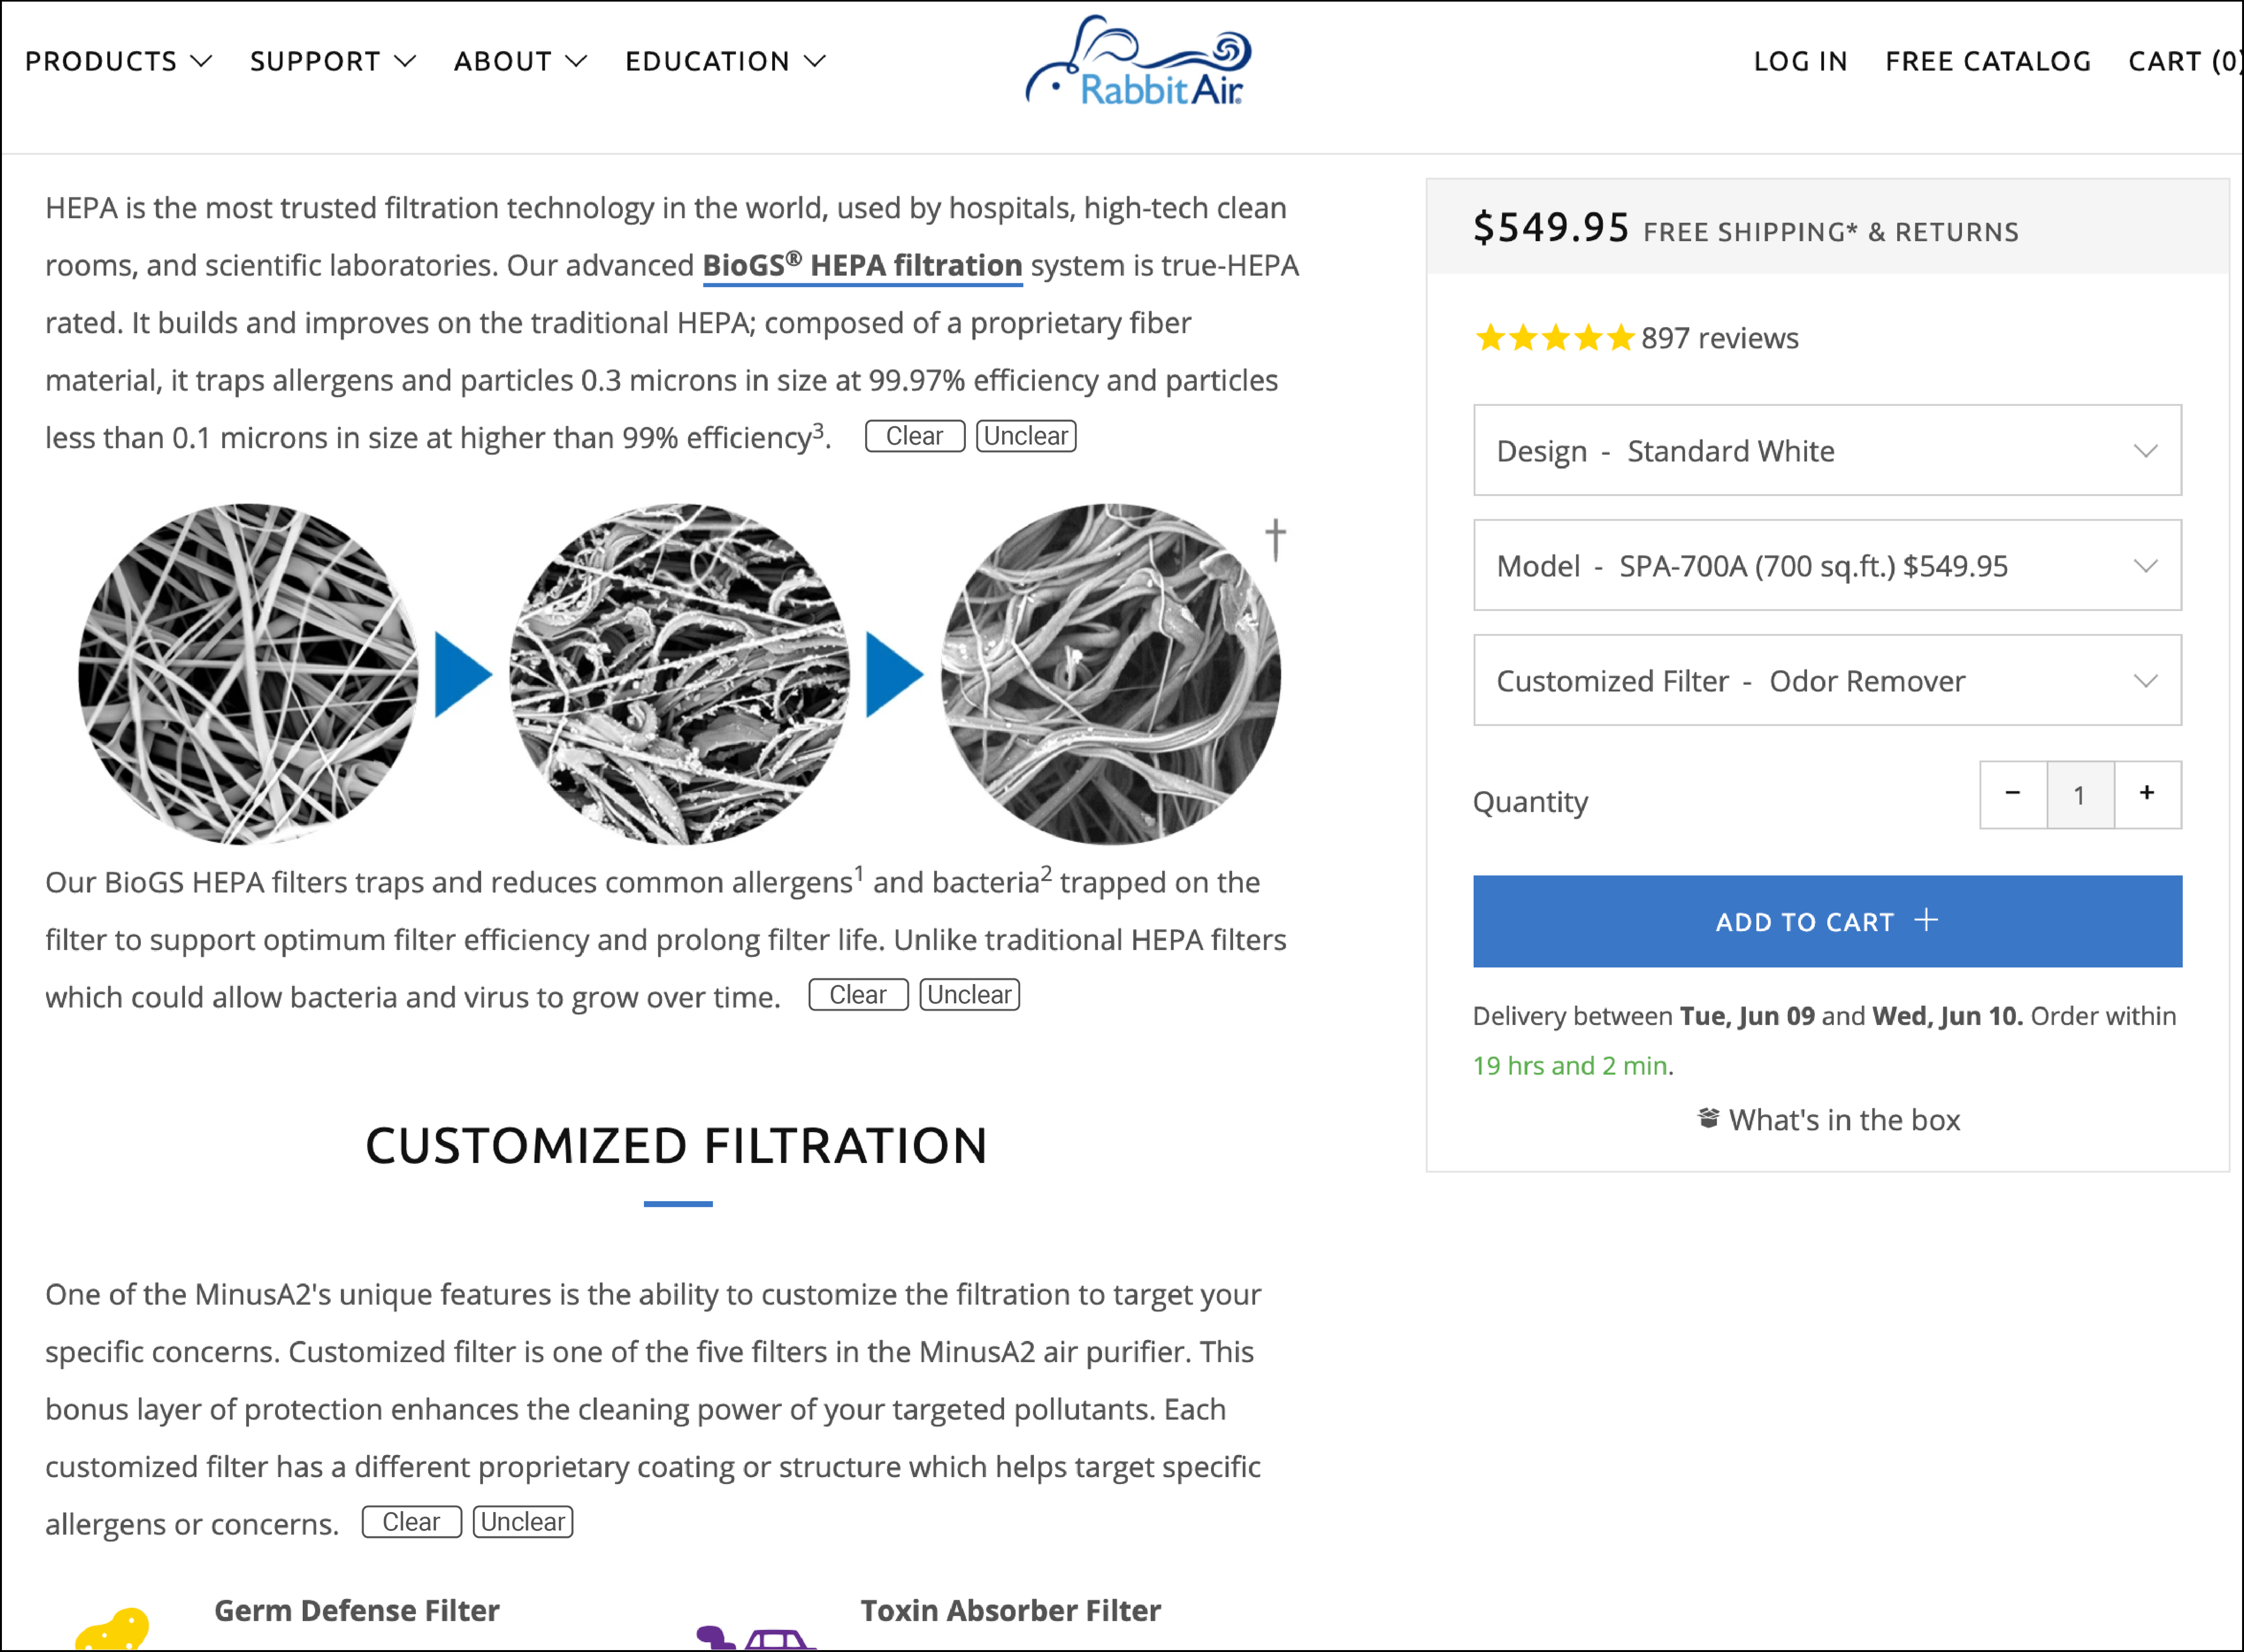 Unique product page design idea. We're constantly looking for an edge on product pages. This is a totally new product page design concept. It'll radically improve your conversion rates.